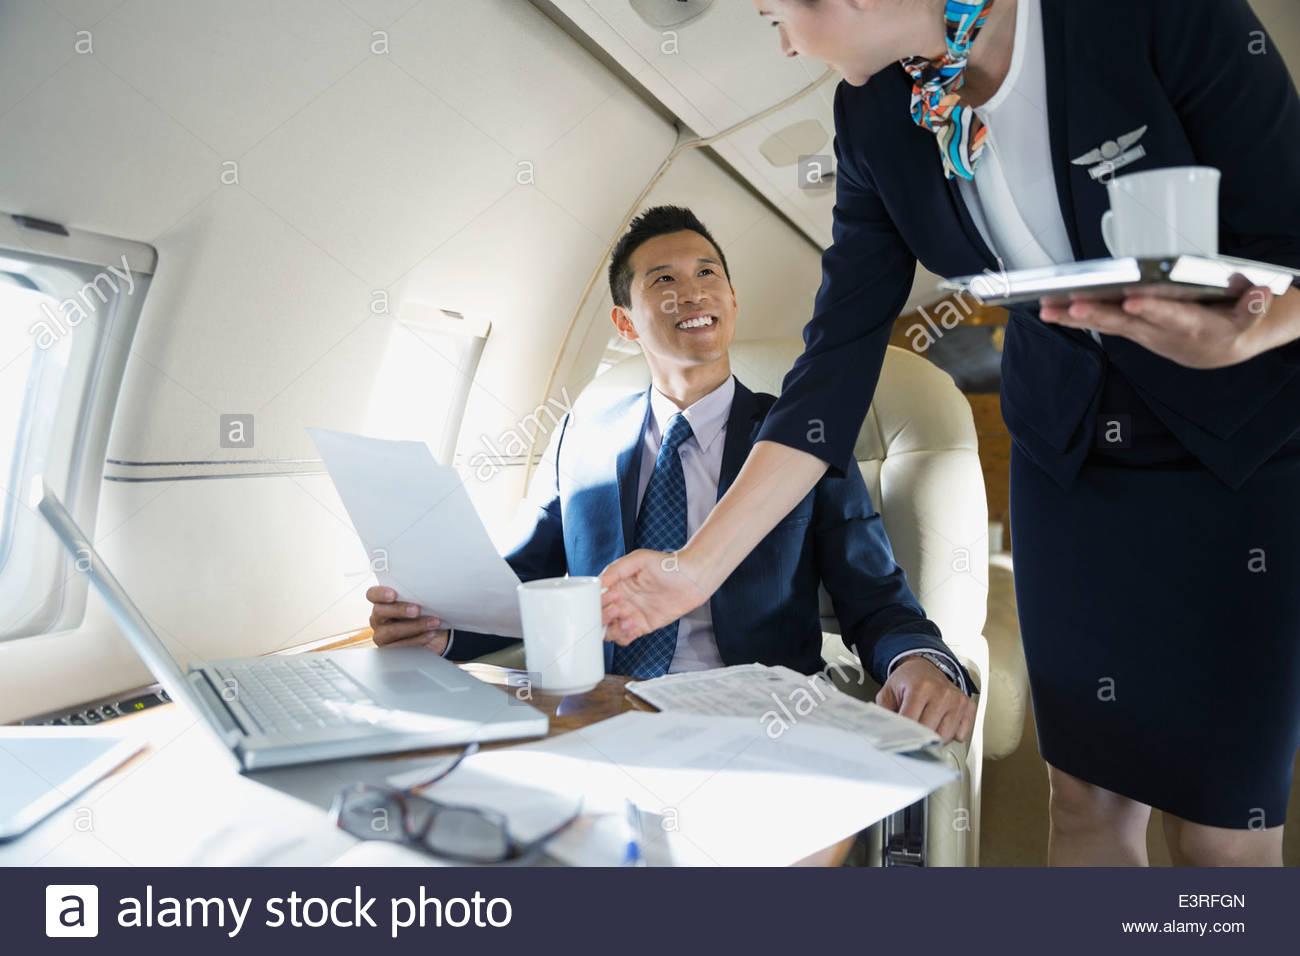 Flight attendant serving businessman on corporate jet - Stock Image